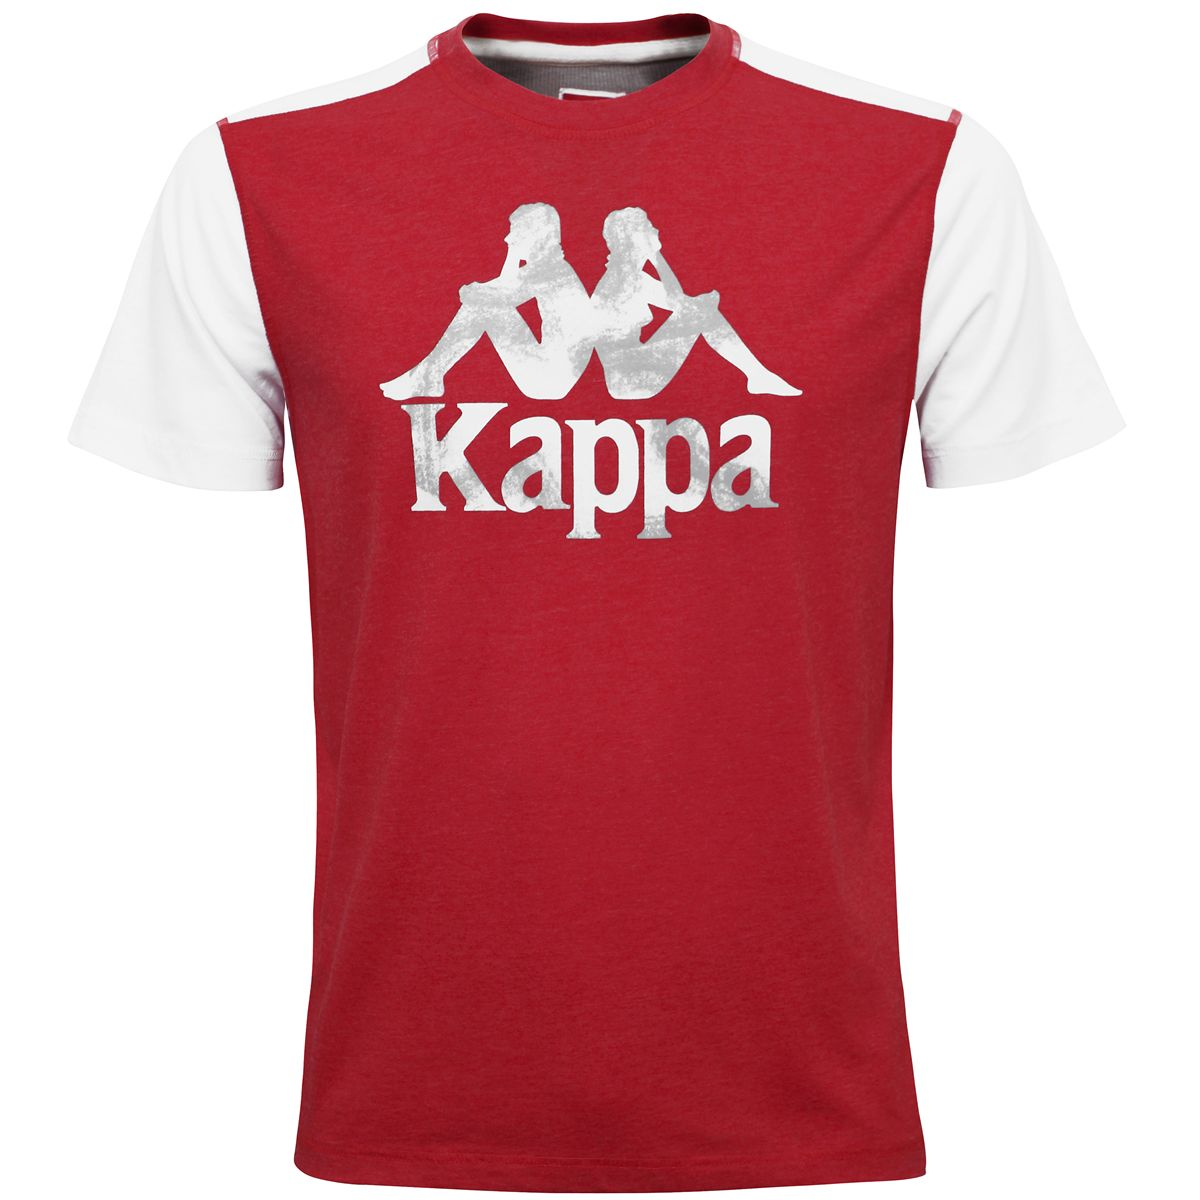 Image from Kappa Store